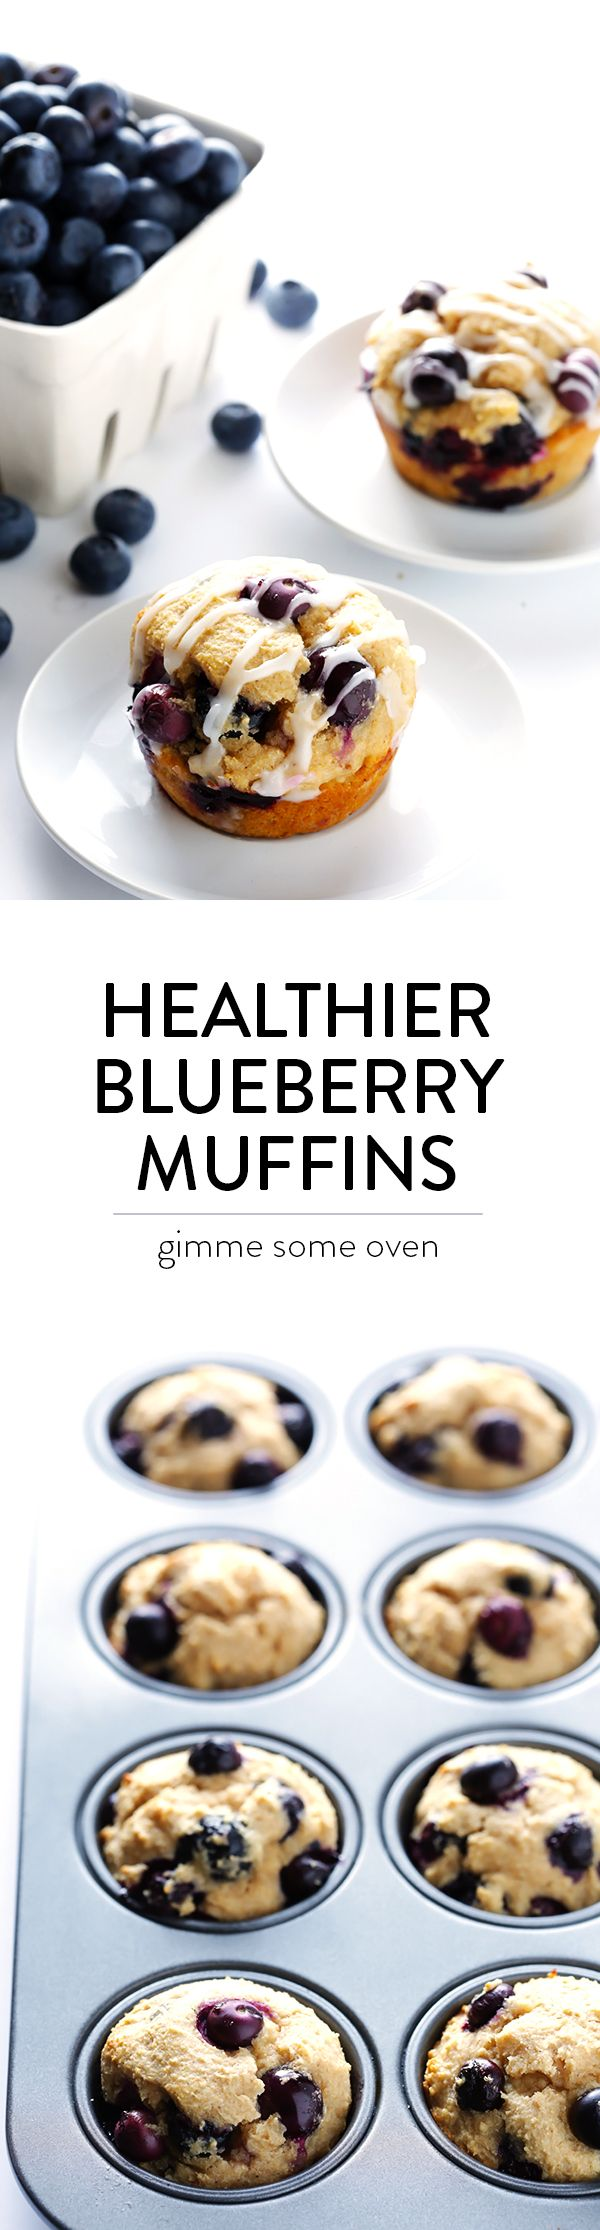 This healthier blueberry muffin recipe is easy to make, made with white whole wheat flour and sweetened with honey, and so fluffy and buttery and delicious! | gimmesomeoven.com